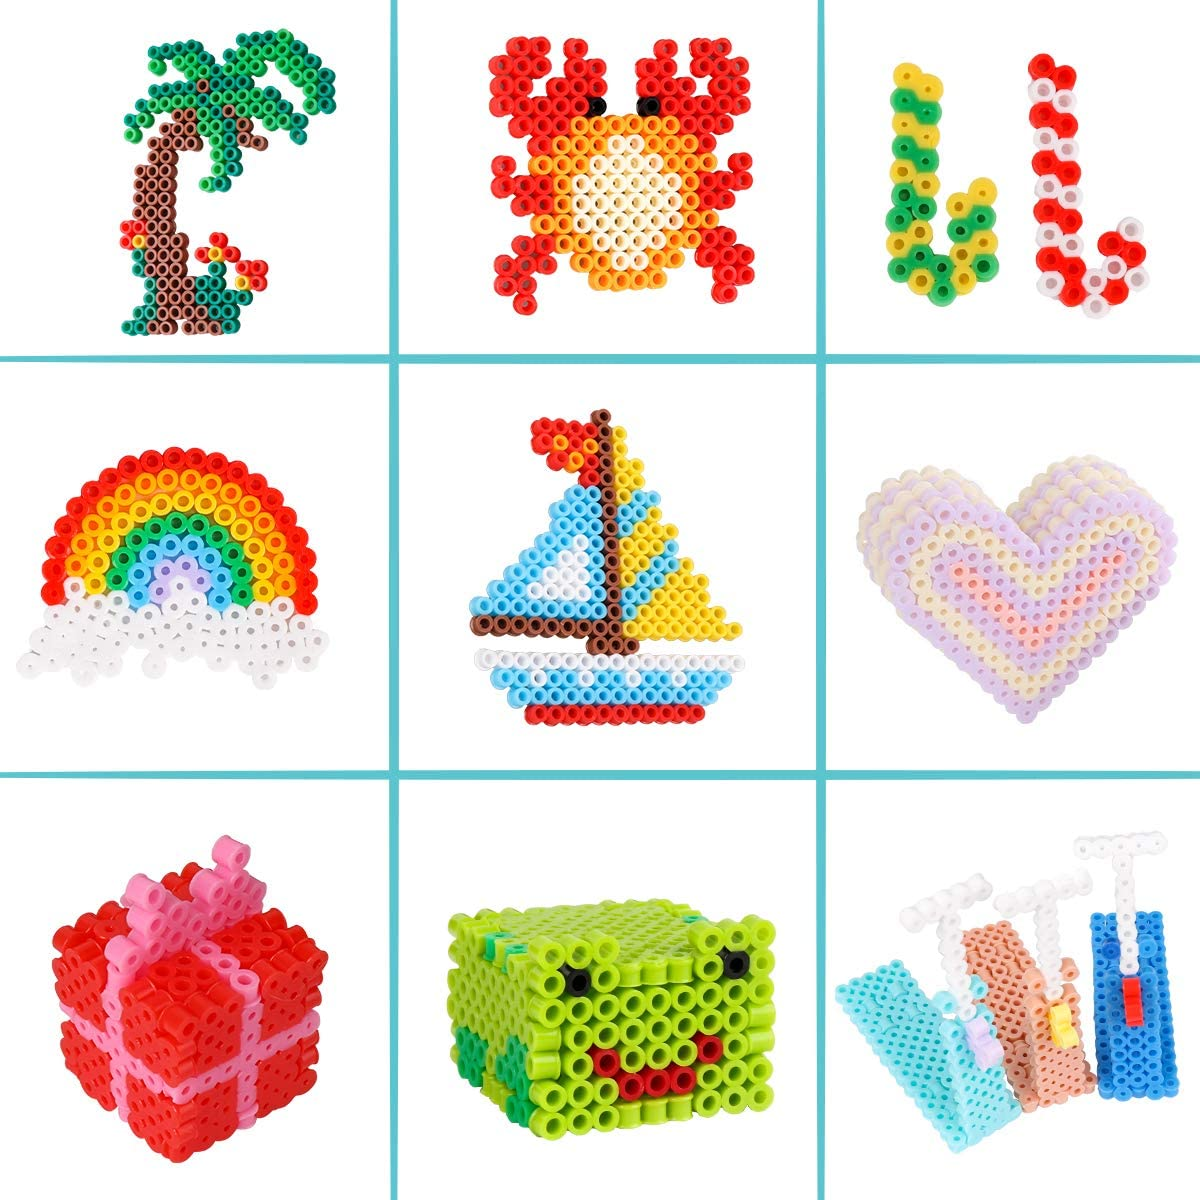 Fuse Beads Kit Ironing Paper /& Chain Accessories Iron Beads Christmas Birthday Gift 11,000 pcs 36 Colors Fuse Beads Craft Set for Kids Including 5 Pegboards